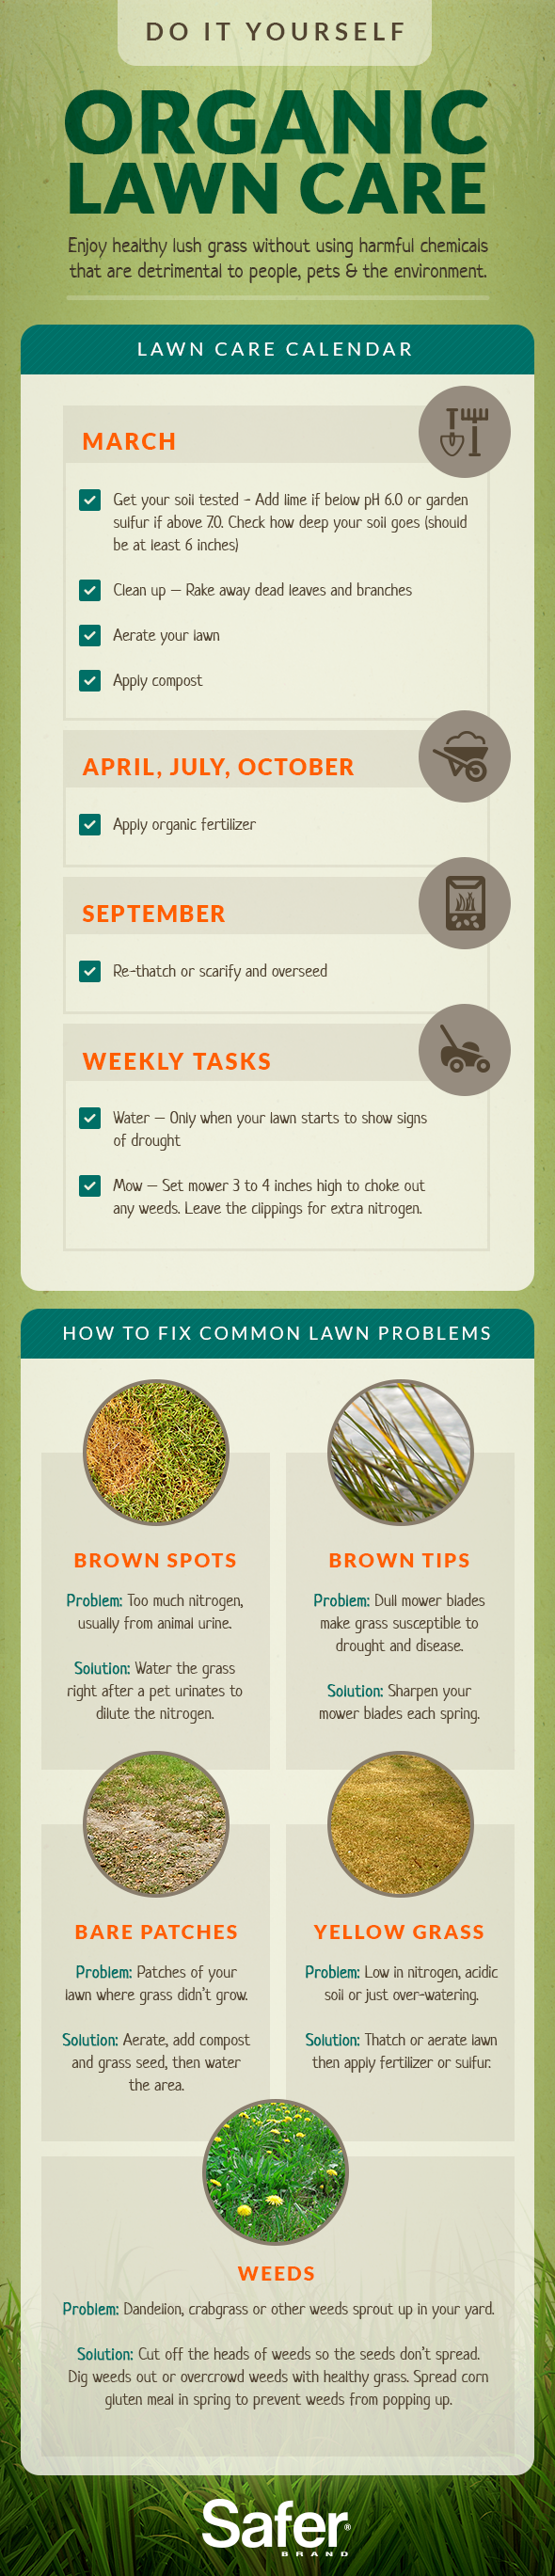 17 Best ideas about Lawn Care Schedule on Pinterest | Lawn care ...